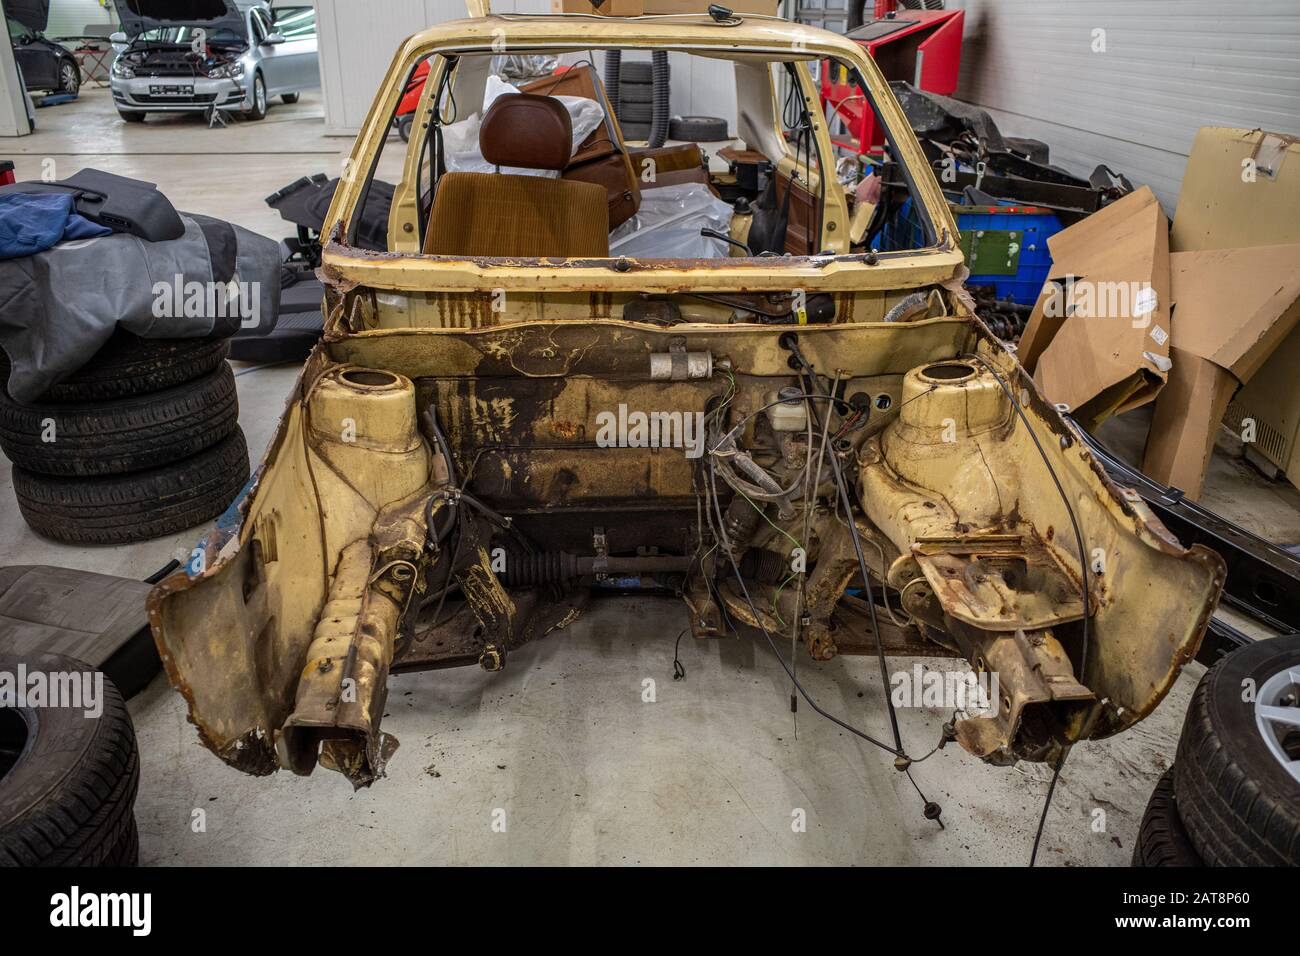 in a garage there is a disassembled old car wreck to be restored Stock Photo